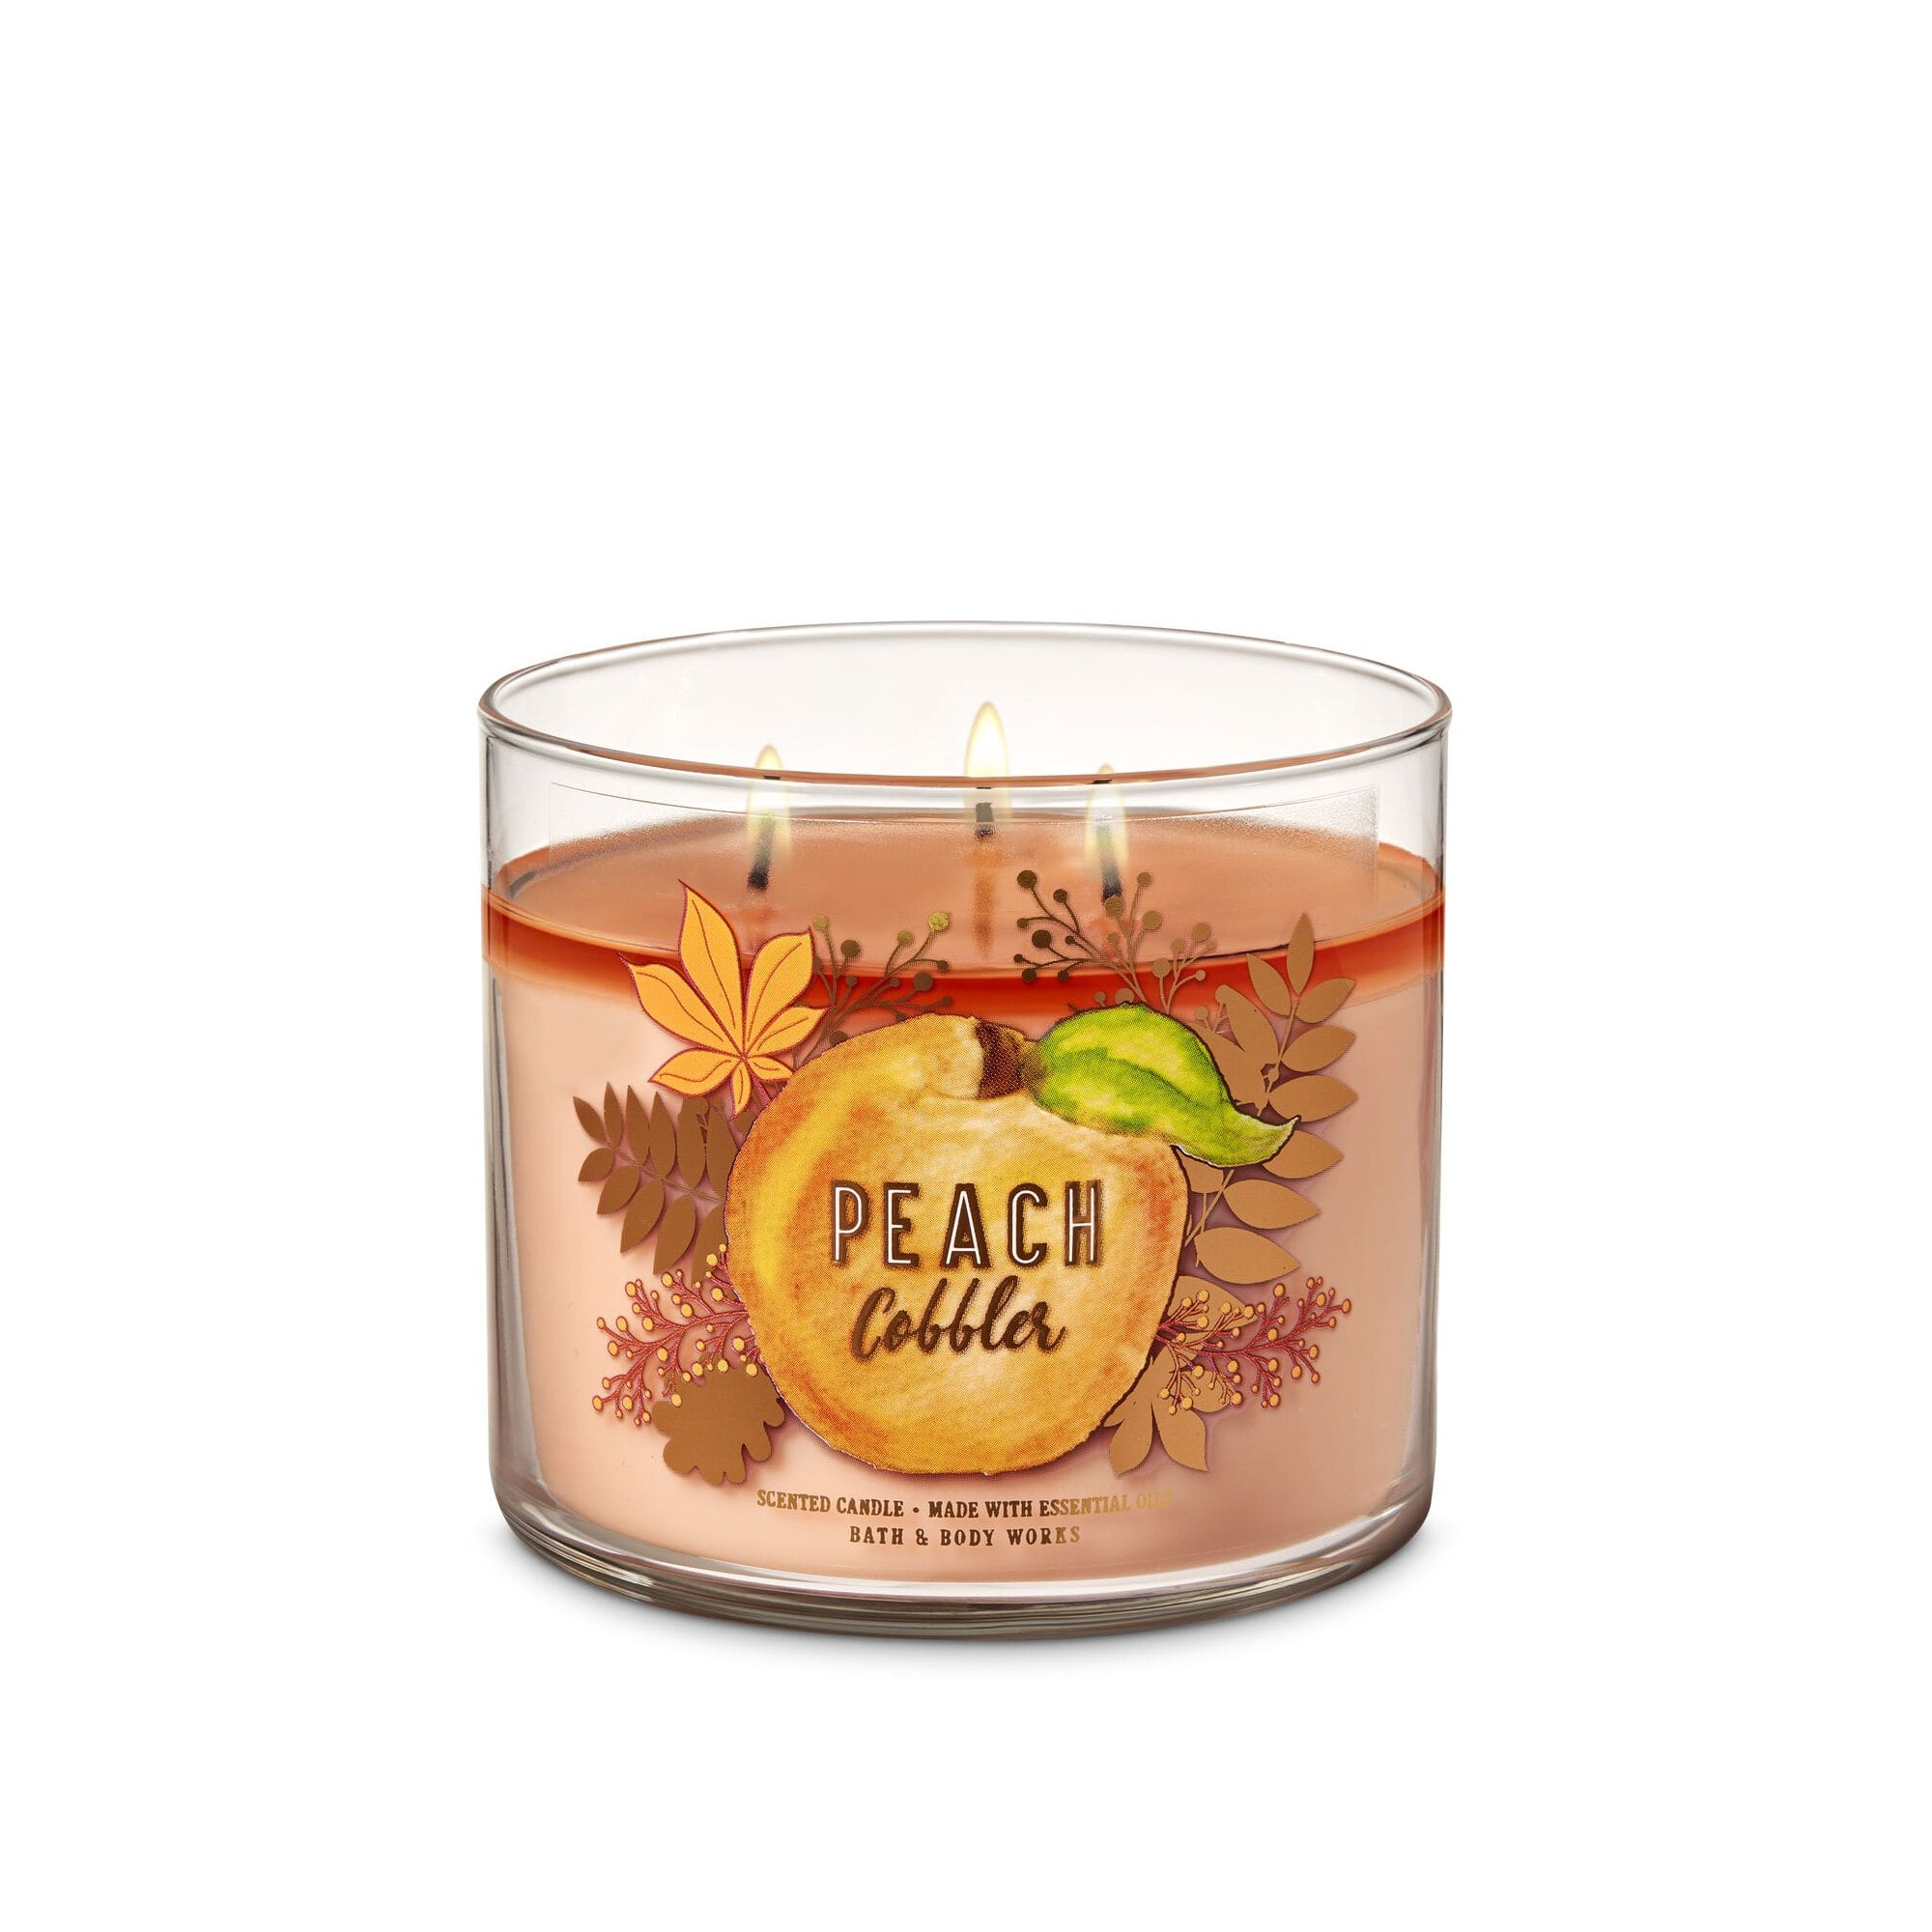 Bath & Body Works Peach Cobbler 3 Wick Scented Candle